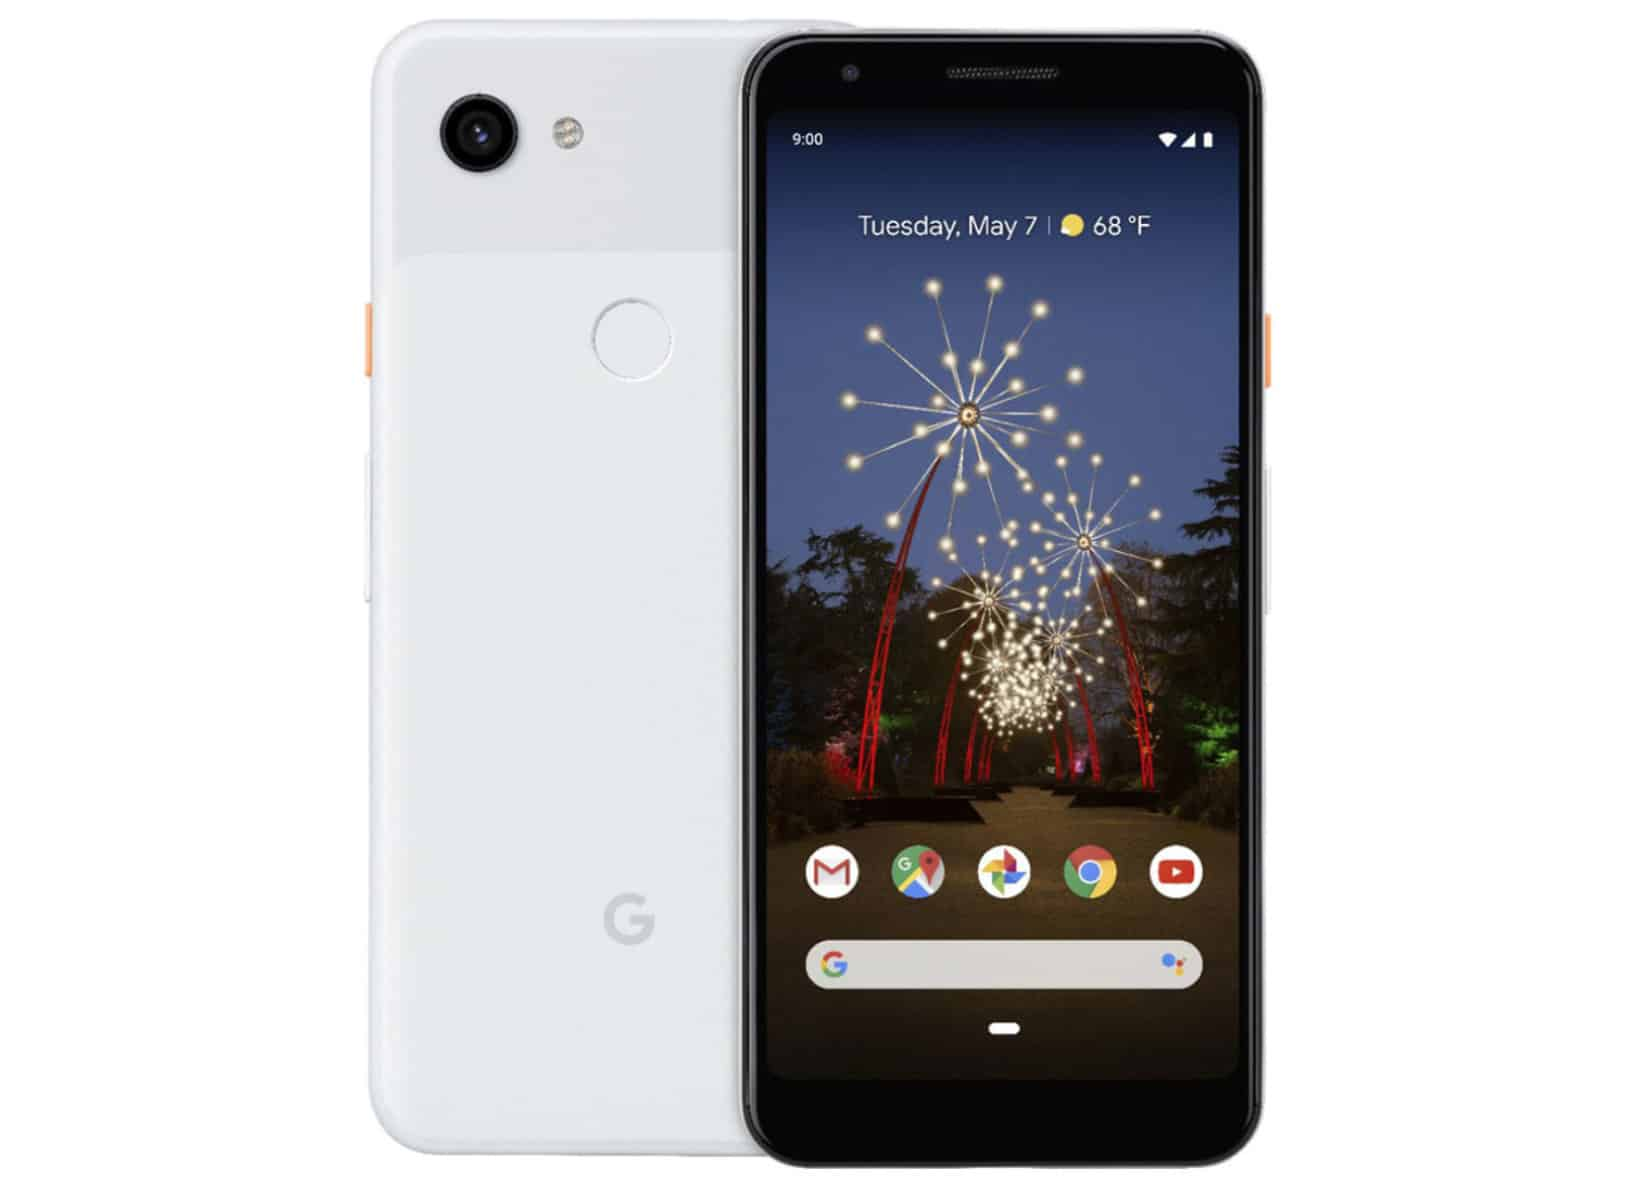 Best Value Android Phone